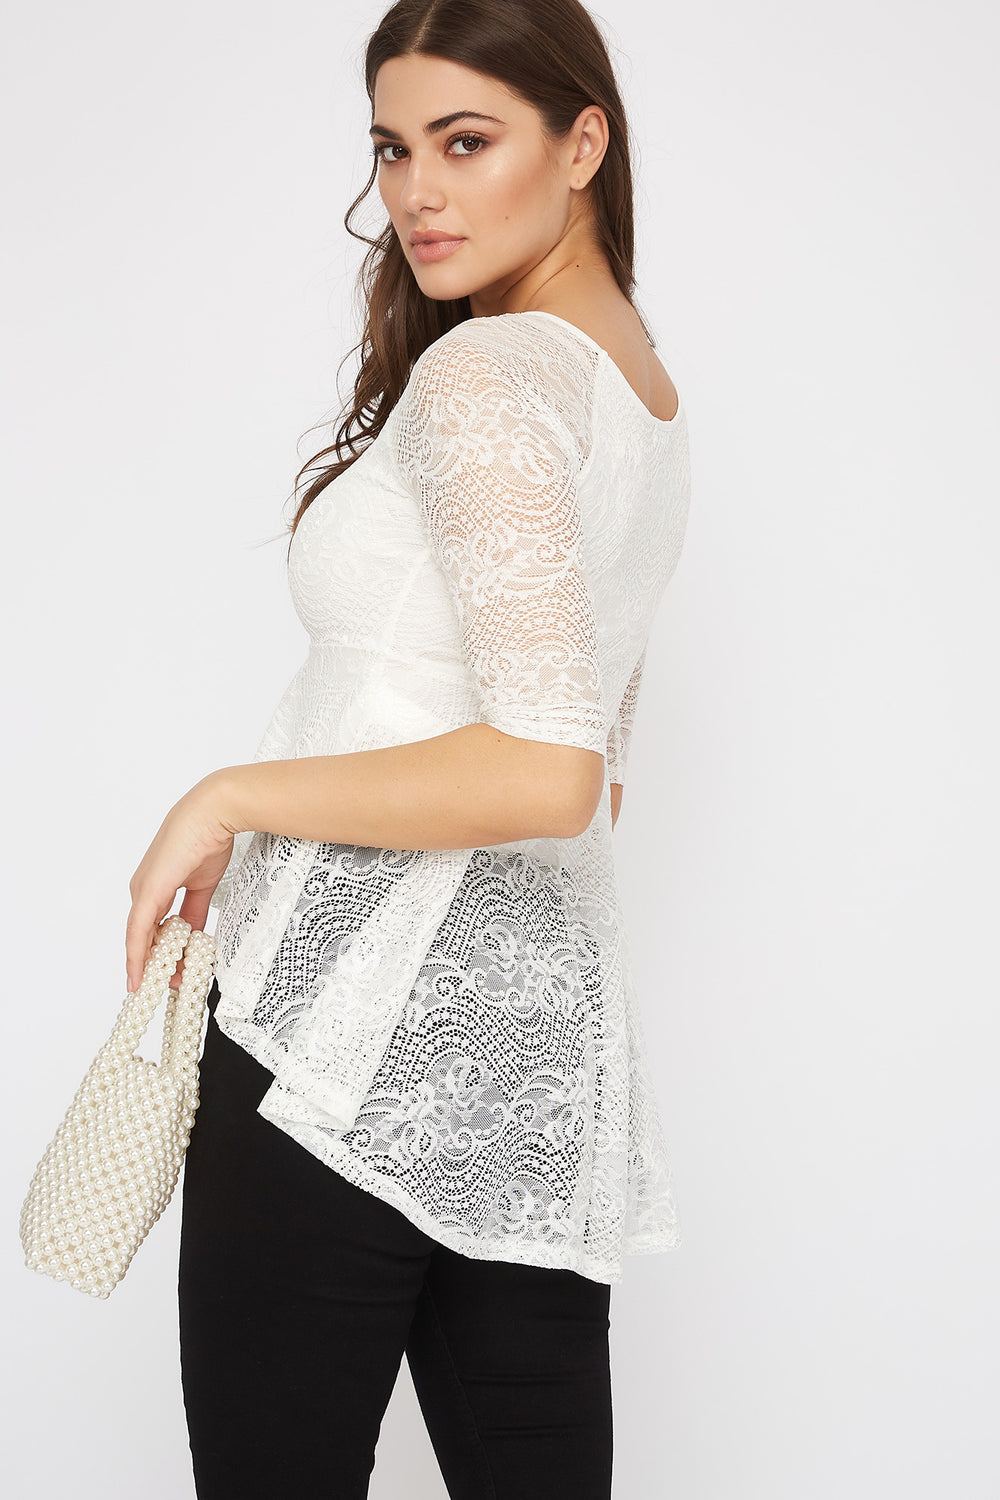 Lace High-Low Peplum Blouse White